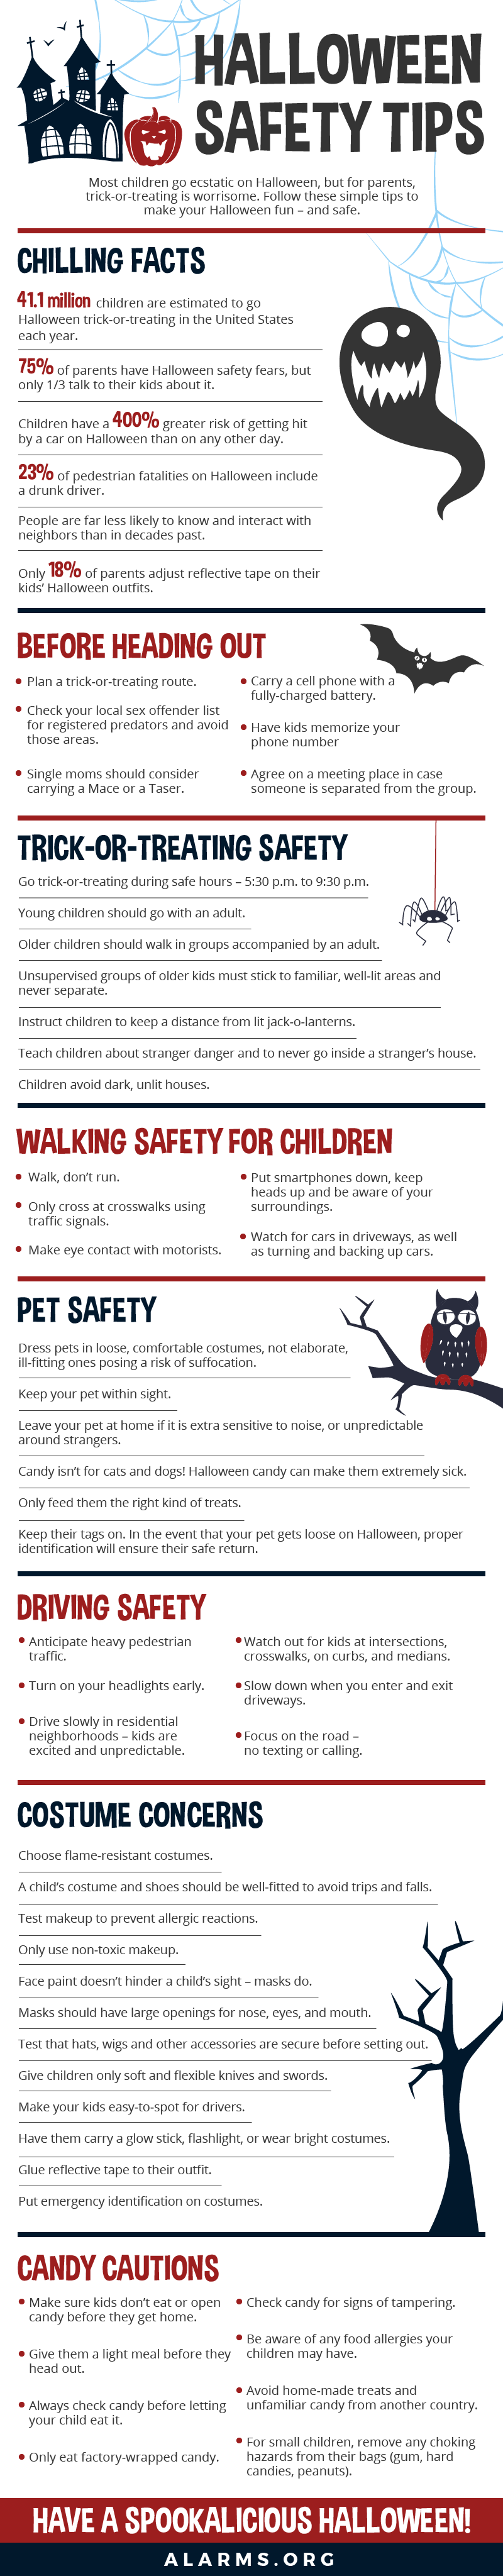 Halloween-Safety-Infographic-2019